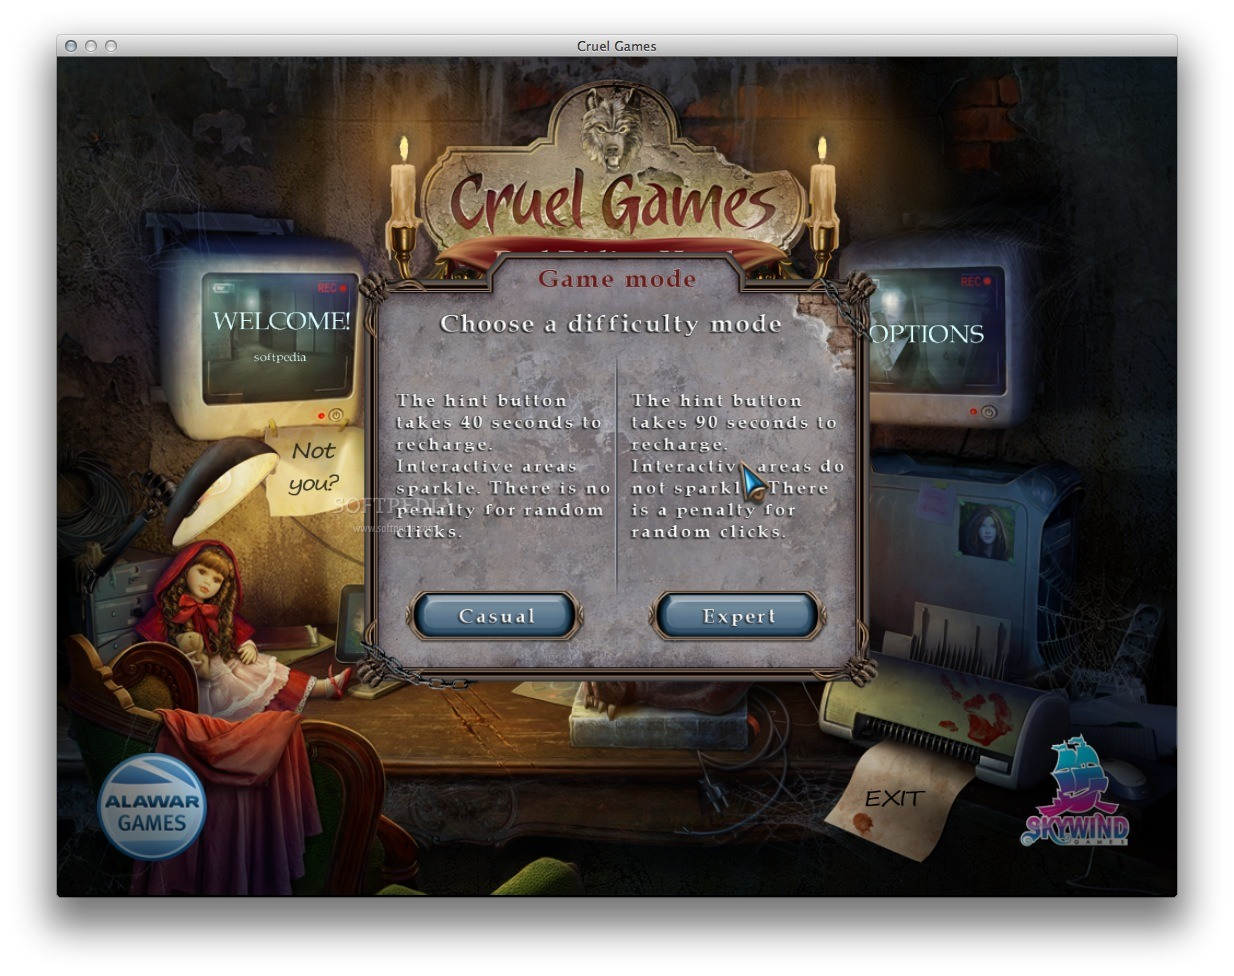 Cruel Games: Red Riding Hood screenshot 3 - You can easily select the game mode.